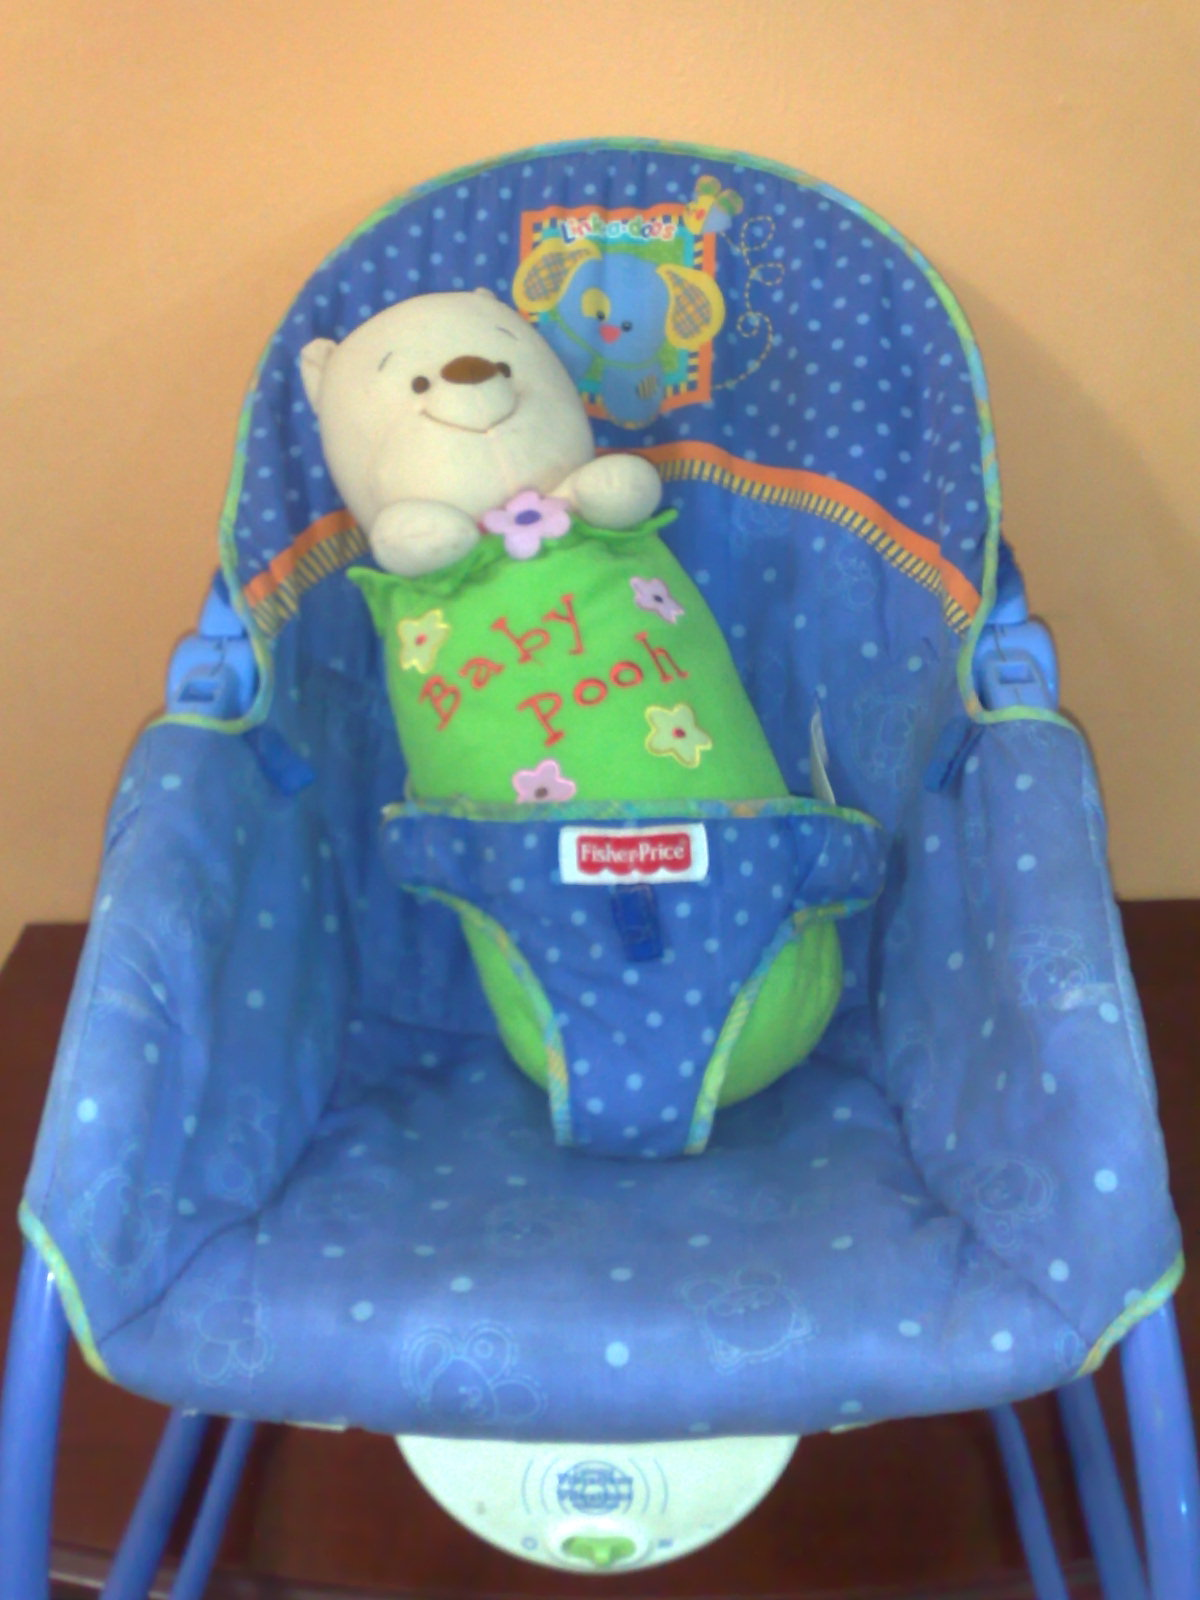 Calming Vibrations Baby Chair Steel With Pad Pu3 Store Sold Item Fisher Price Link A Doos Infant